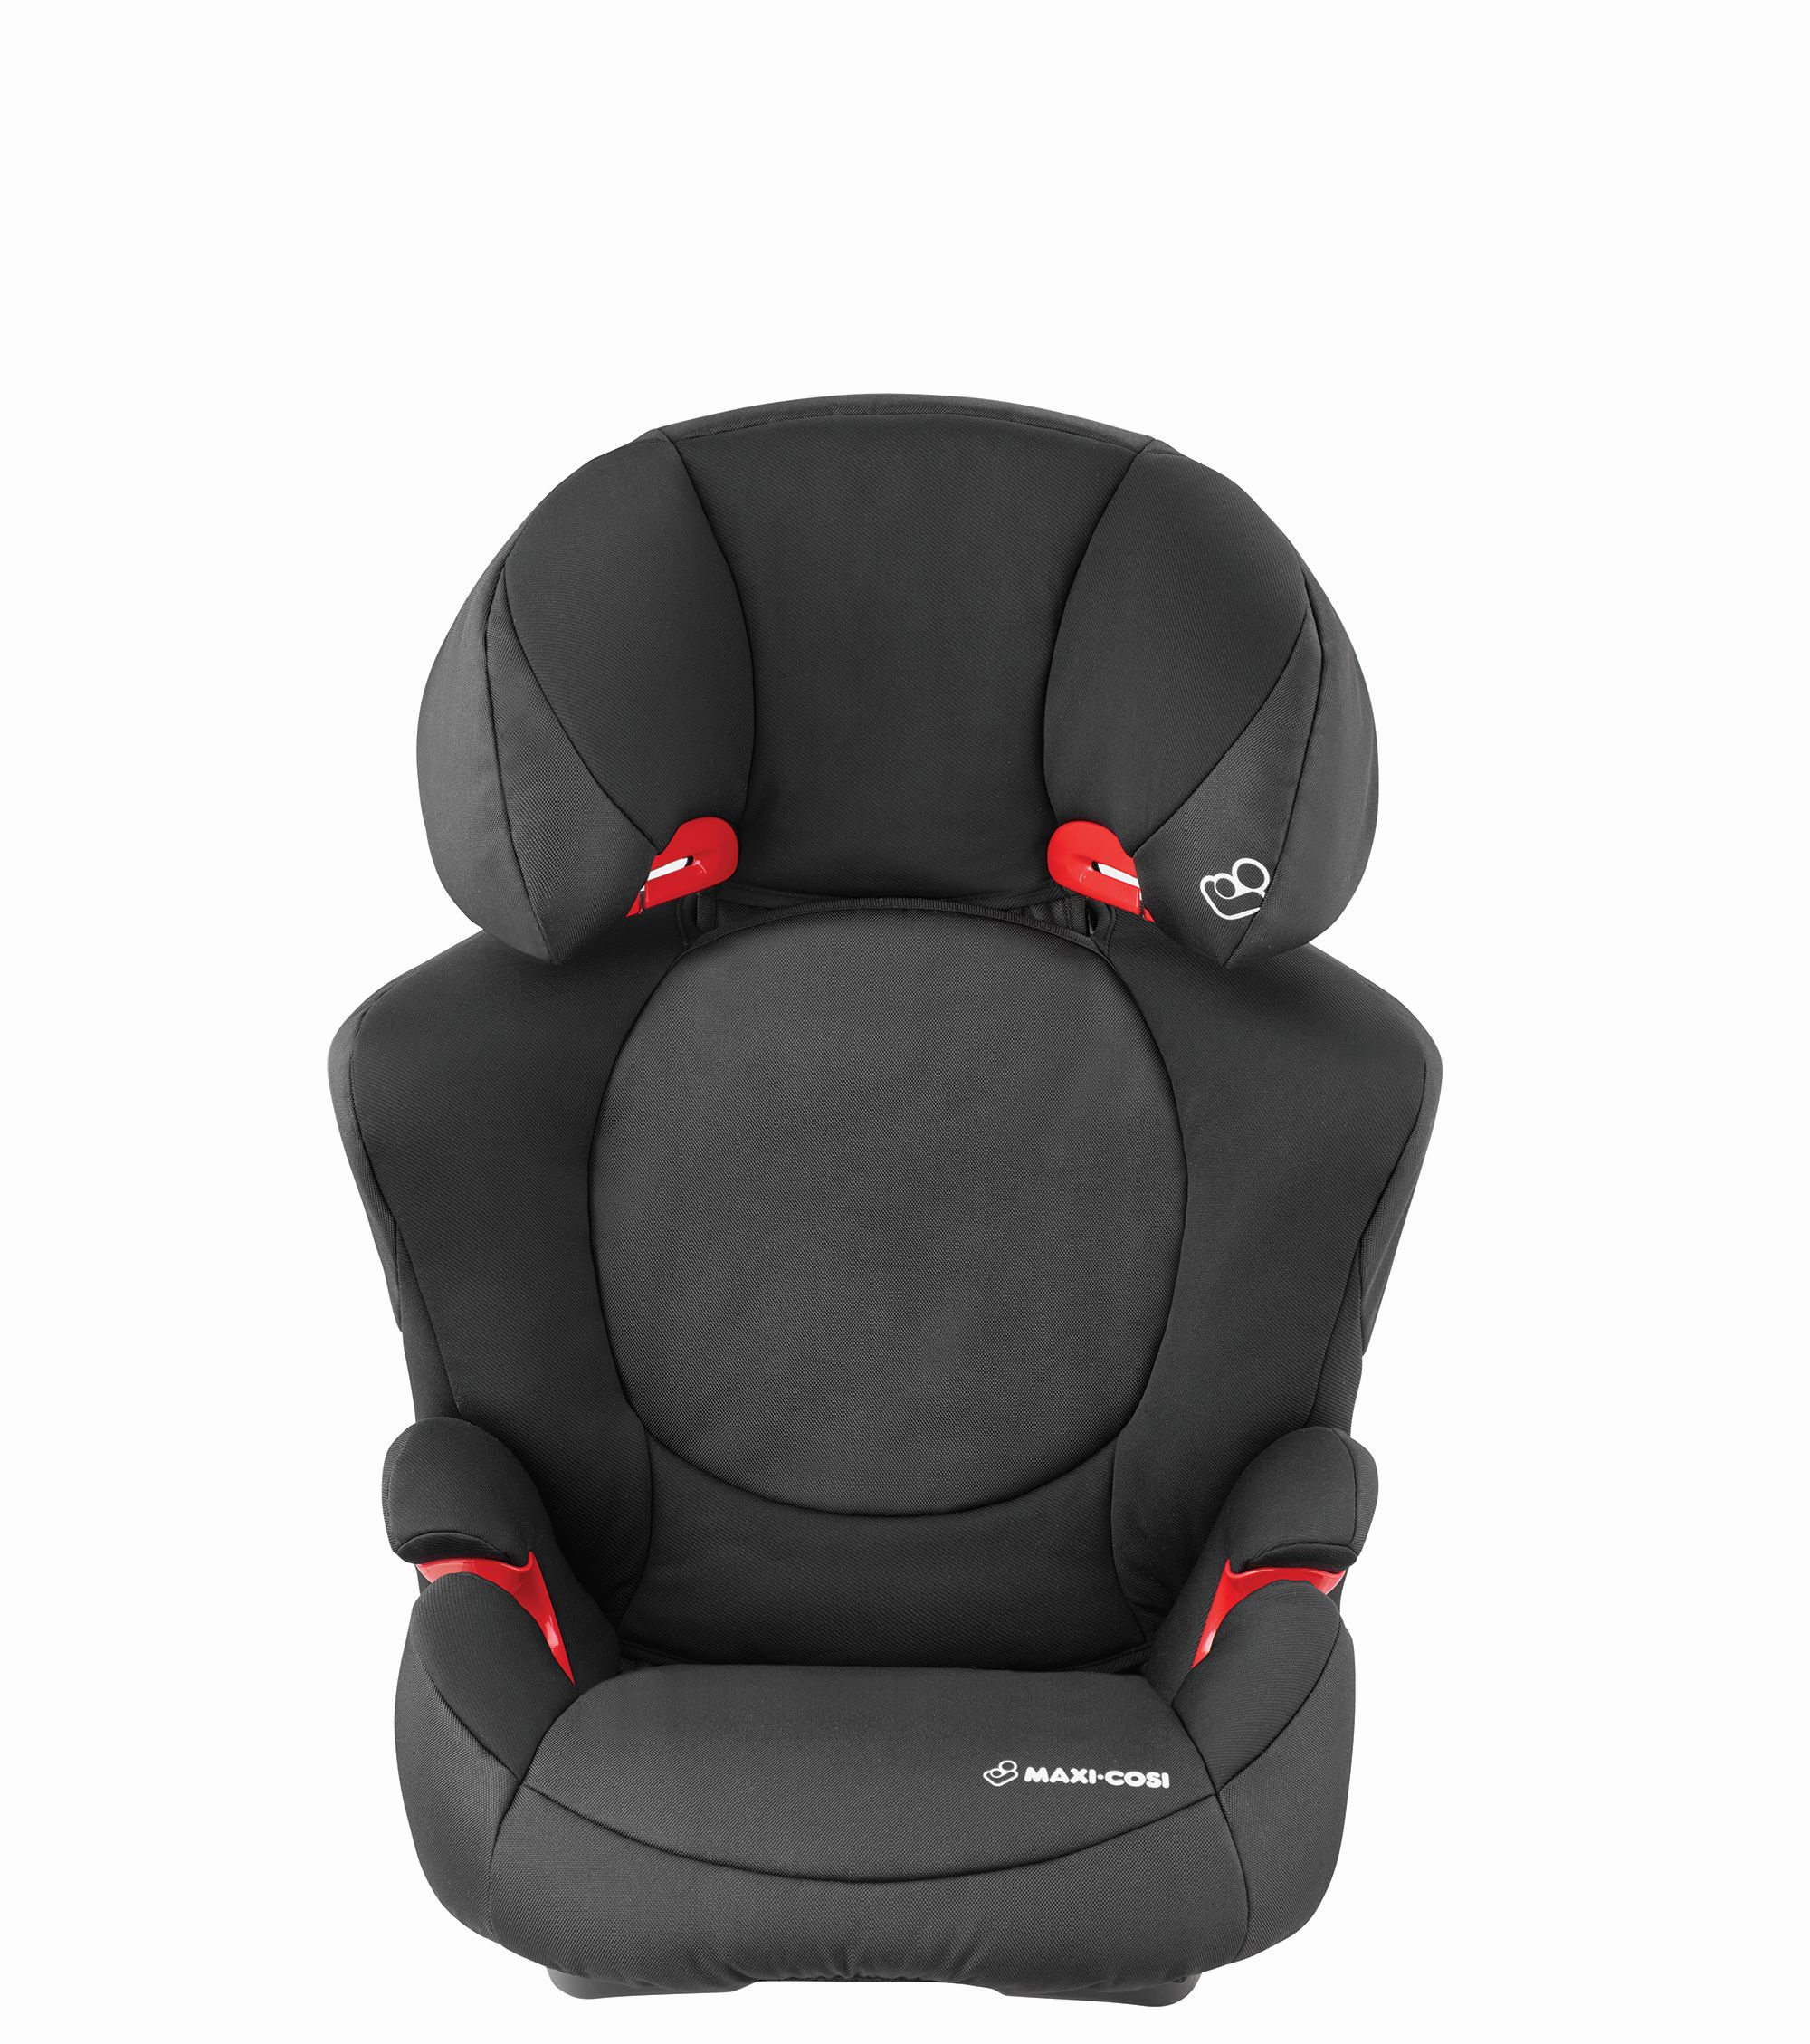 maxi cosi child car seat rodi xp fix 2018 night black buy at kidsroom car seats. Black Bedroom Furniture Sets. Home Design Ideas